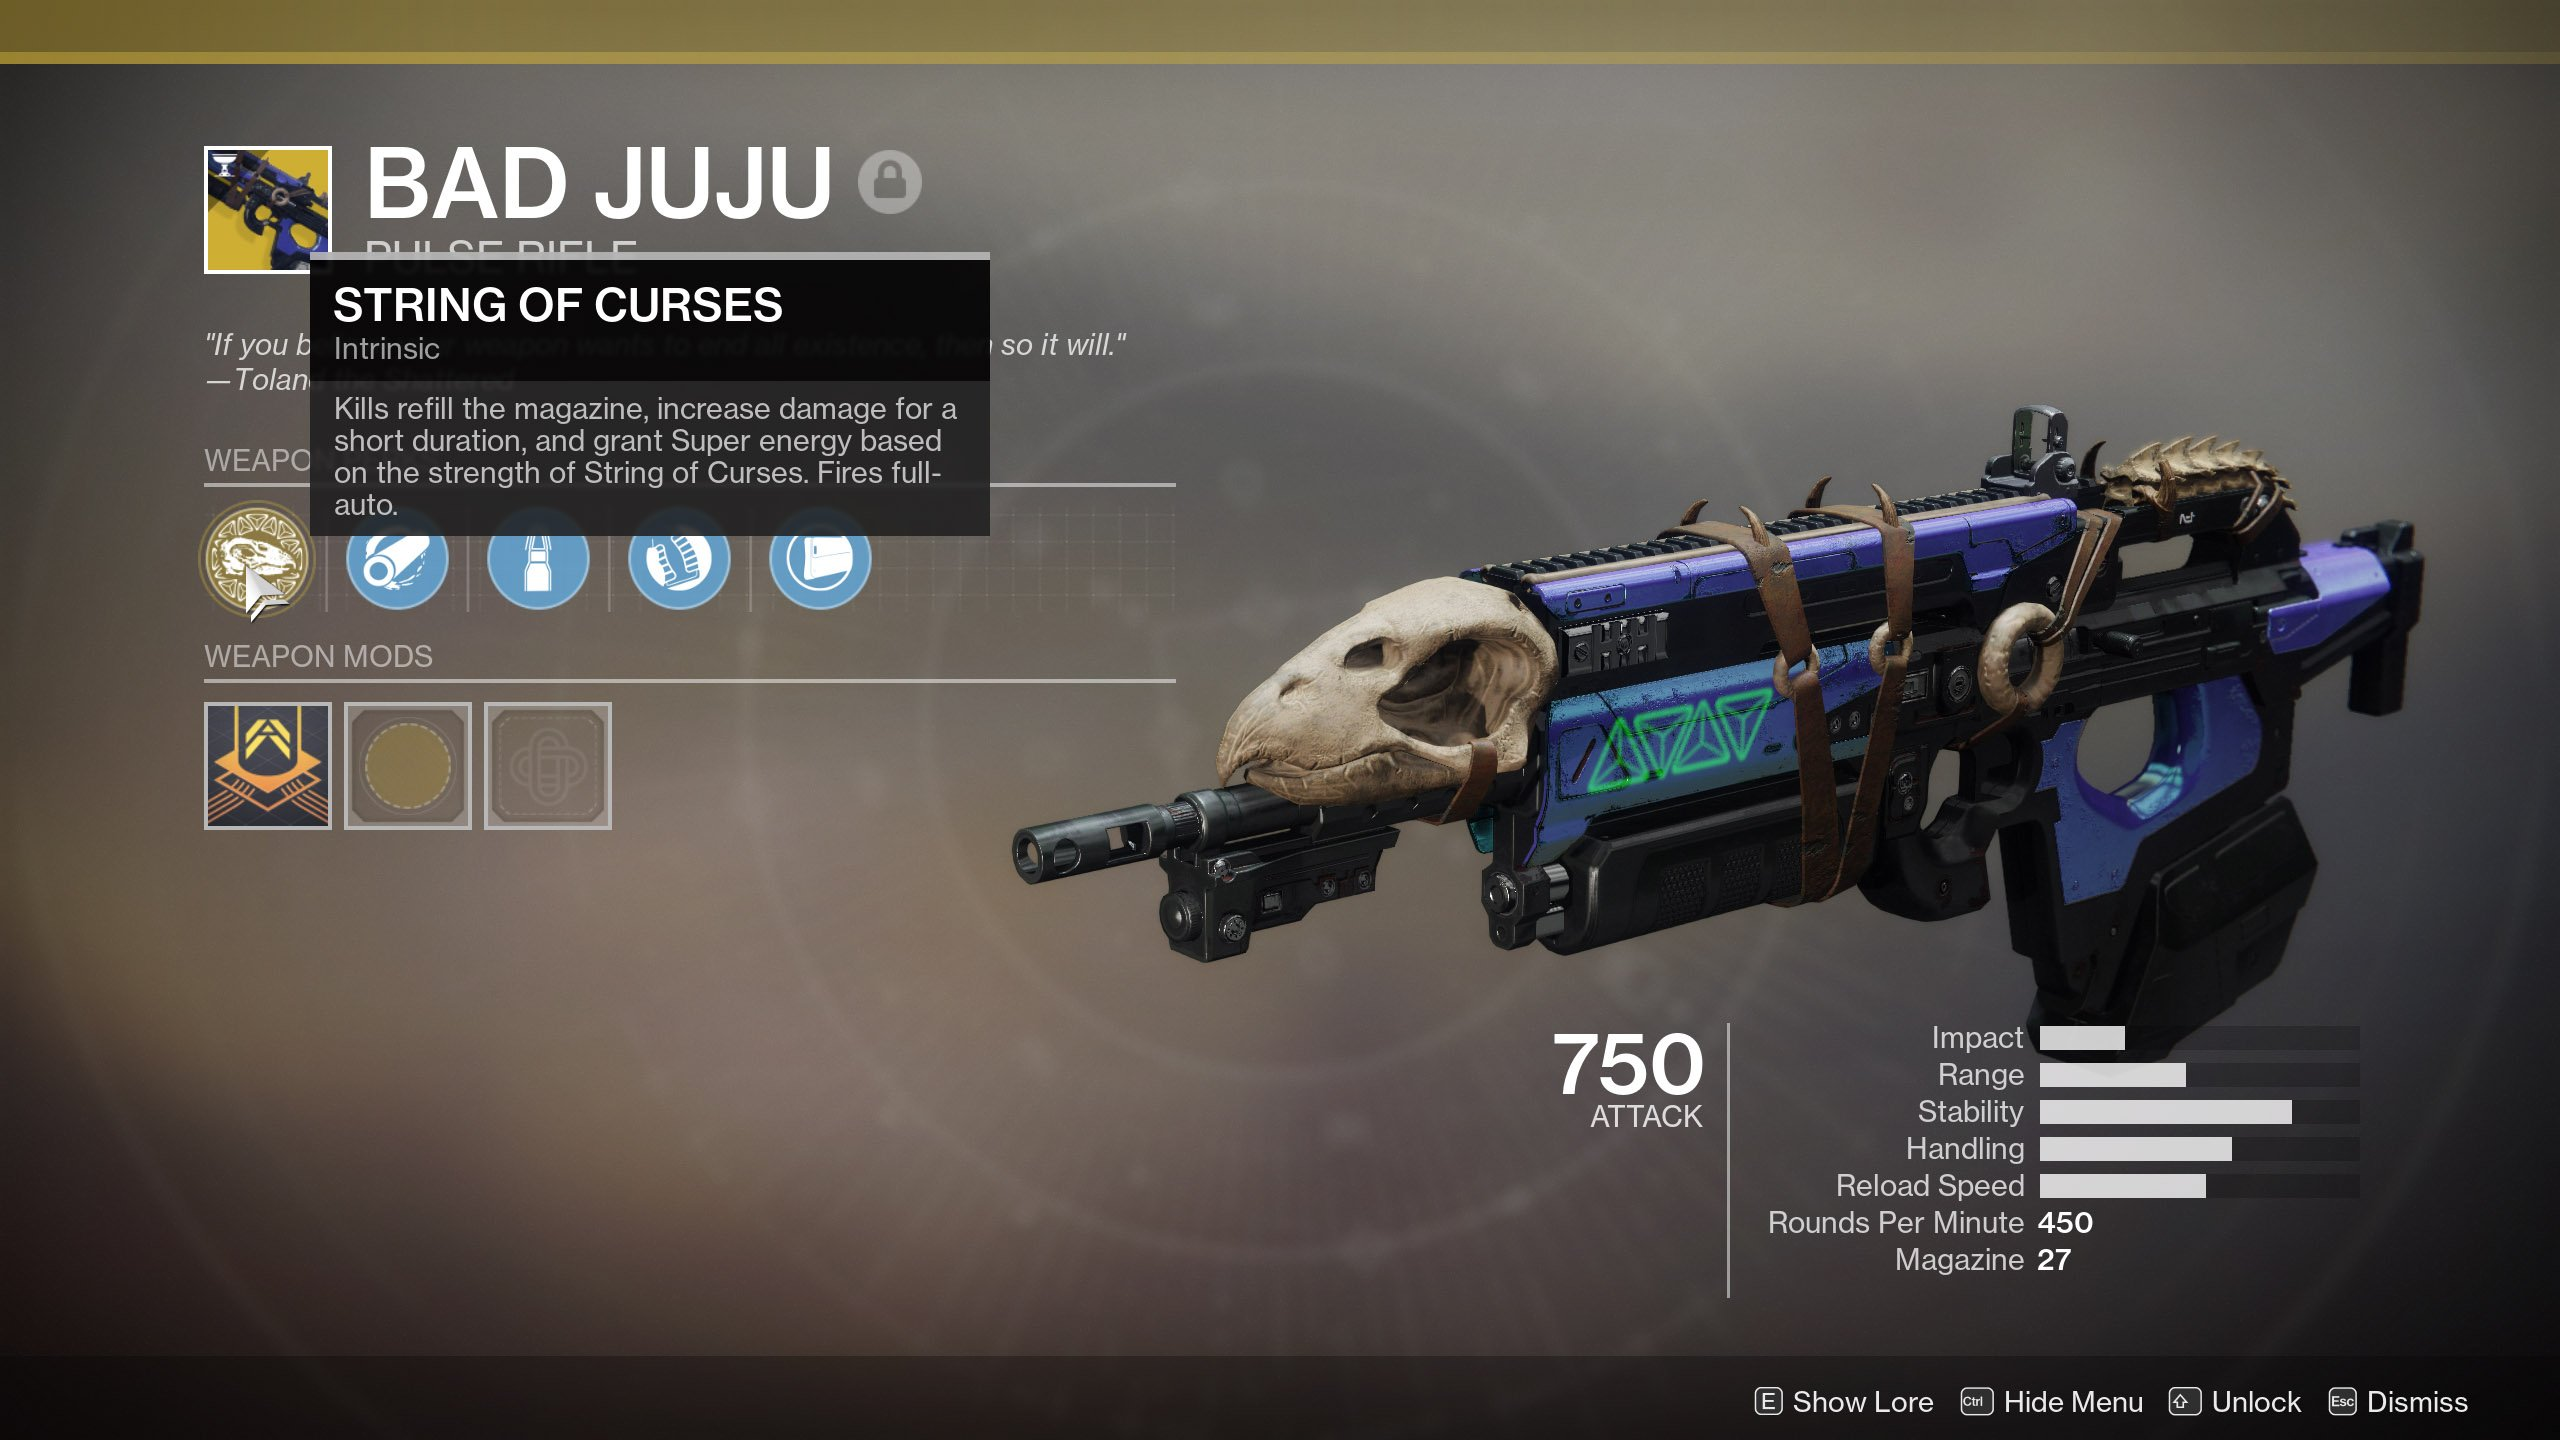 How to get the Bad JuJu Exotic Pulse Rifle in Destiny 2